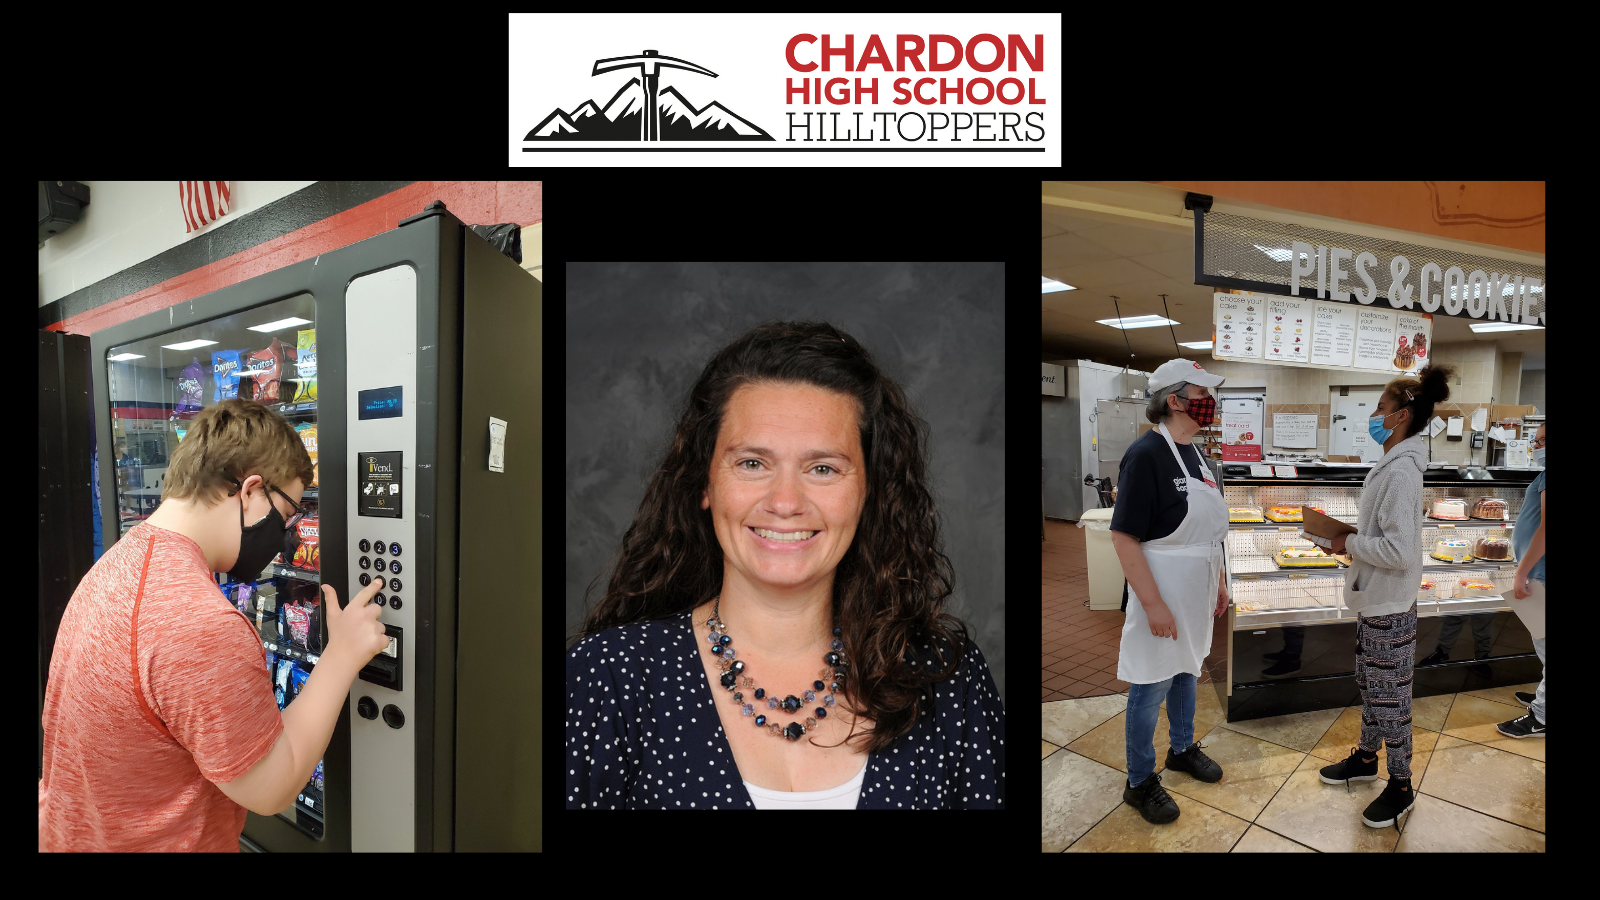 collage graphic:  Chardon High School Hilltoppers mountain axe logo (red, white, black); 3 photos:  Chardon High School student using the vending machine in the school cafeteria; staff photo of teacher Amanda Bunker [photo credit:  Pastor Photography]; and an action photo of a Chardon High School student interviewing a Giant Eagle bakery employee - they are standing in the Bakery Department of the store